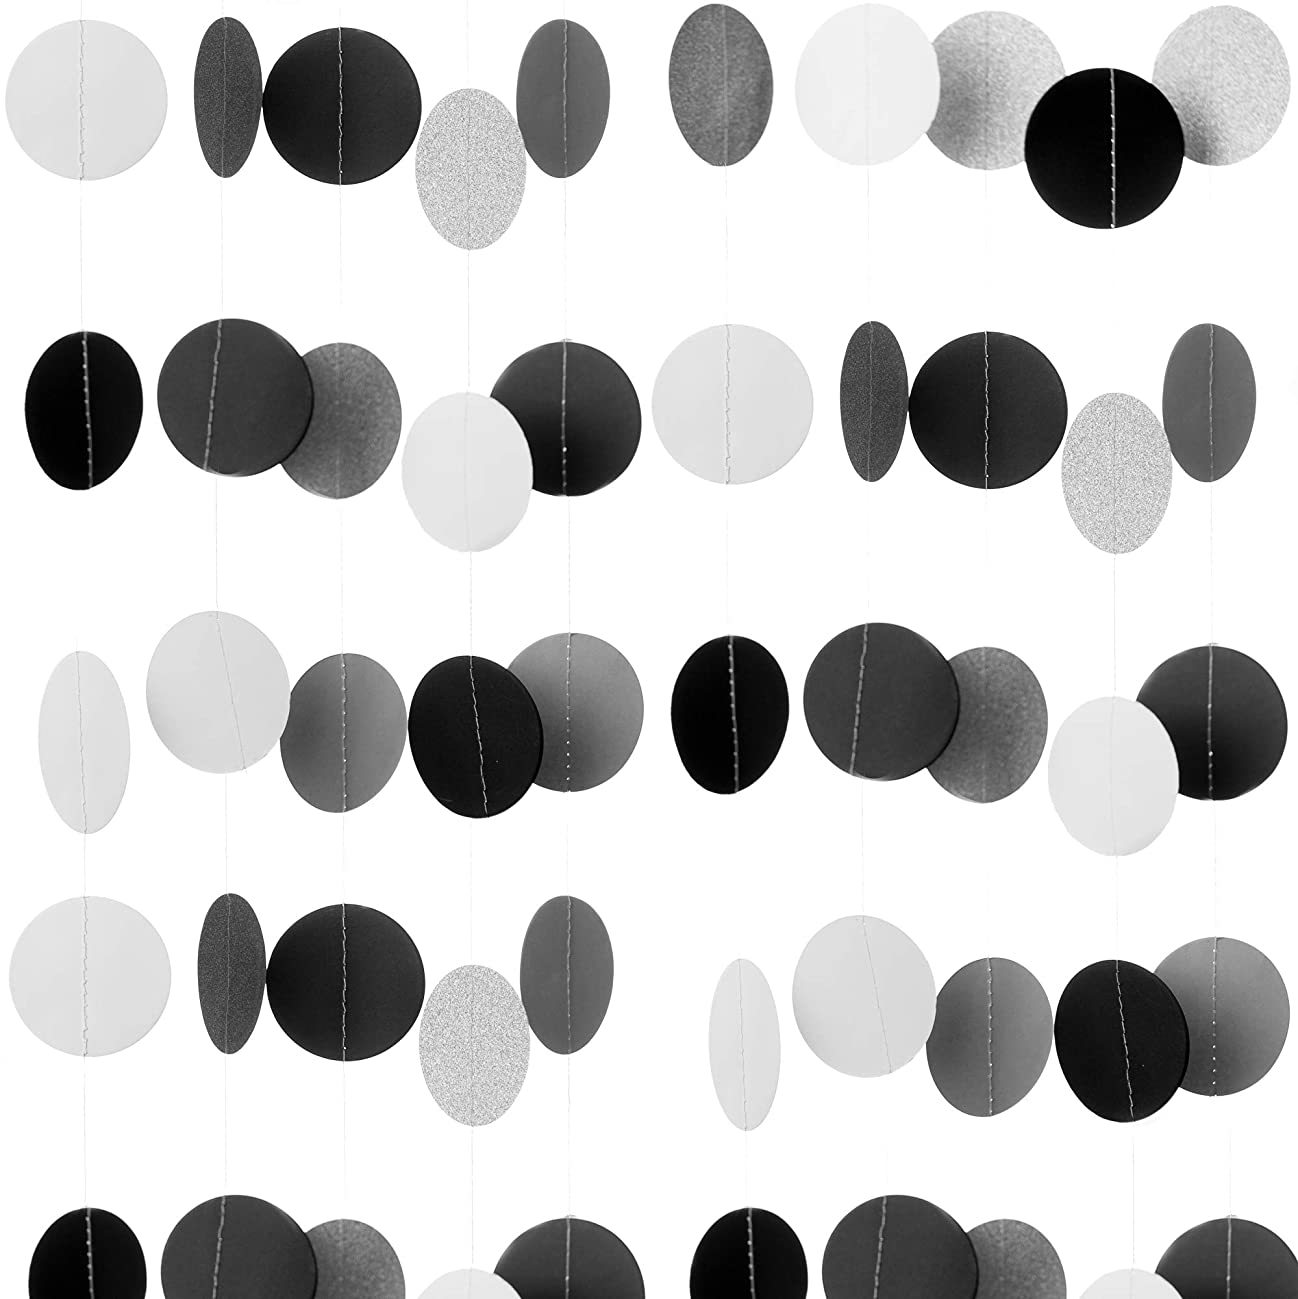 Ella Celebration 3 Pack Paper Garland Decorations, Black and Silver Glitter Circle Dots Hanging Banner, Room Decor for Wedding Christmas Holiday Shower Photo Booth Props (Silver)